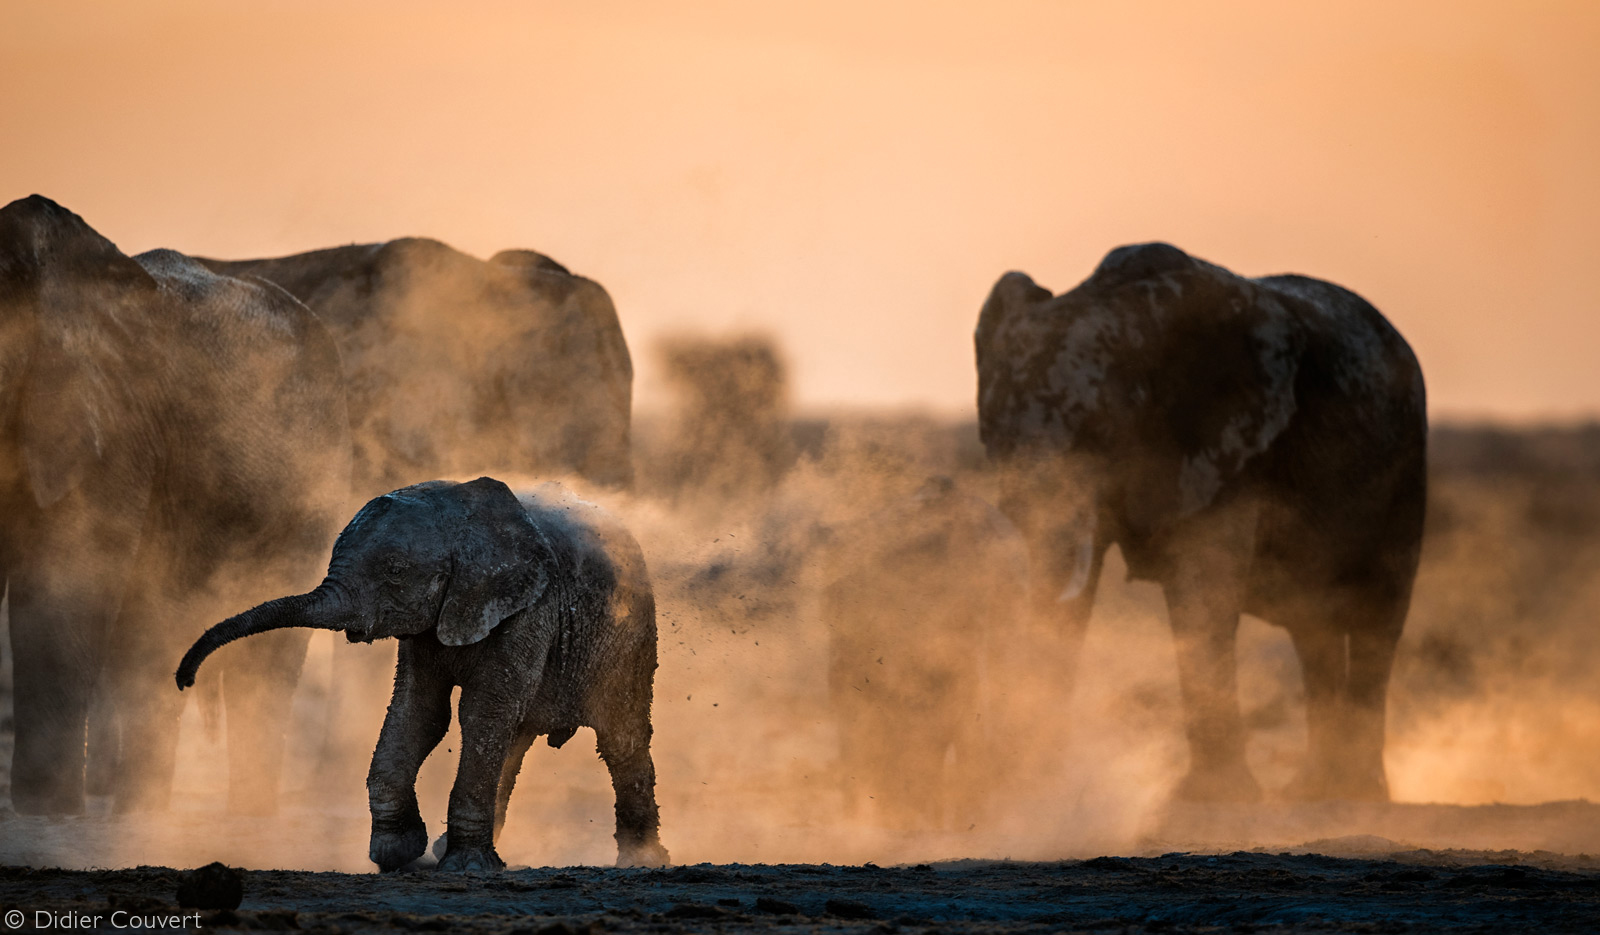 An elephant calf attempt to give itself a dust bath. Nxai Pan National Park, Botswana © Didier Couvert